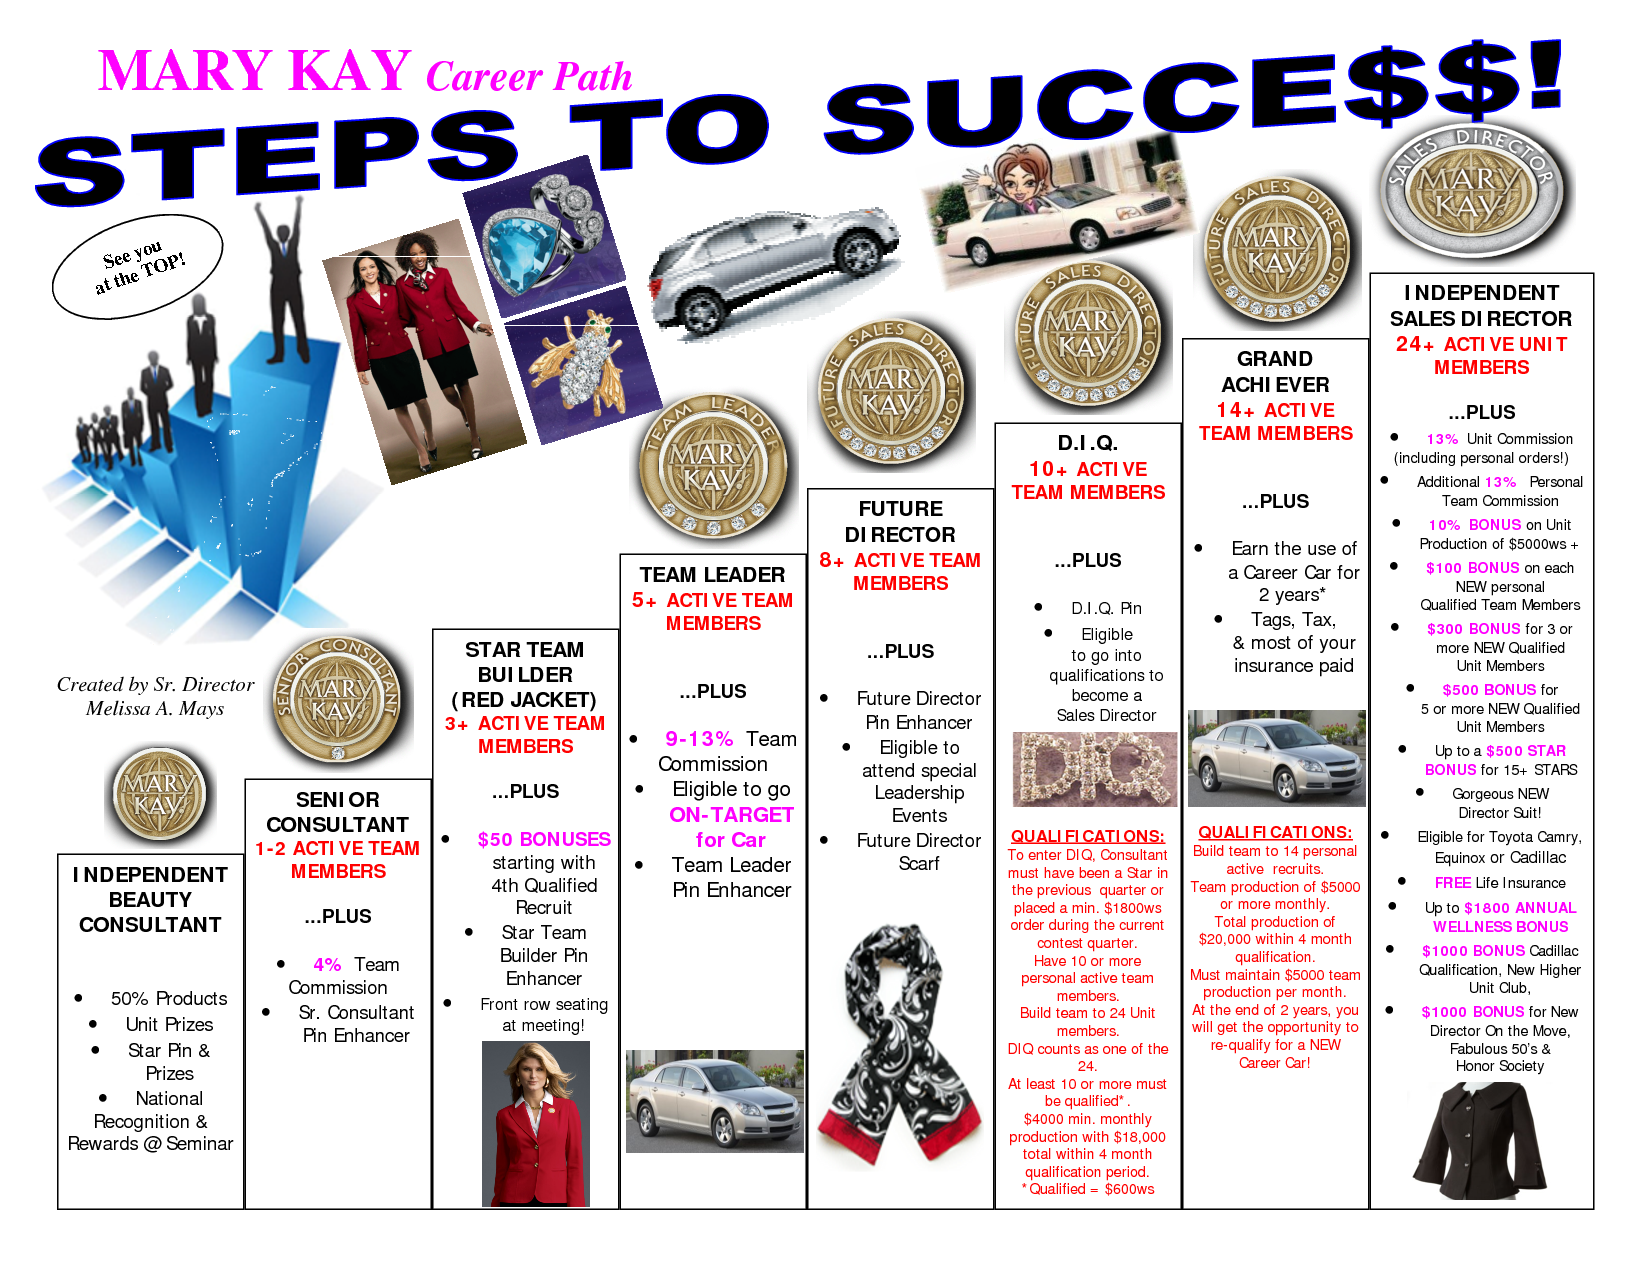 356 best mary kay images on pinterest mary kay party beauty as a mary kay beauty consultant i ccuart Images